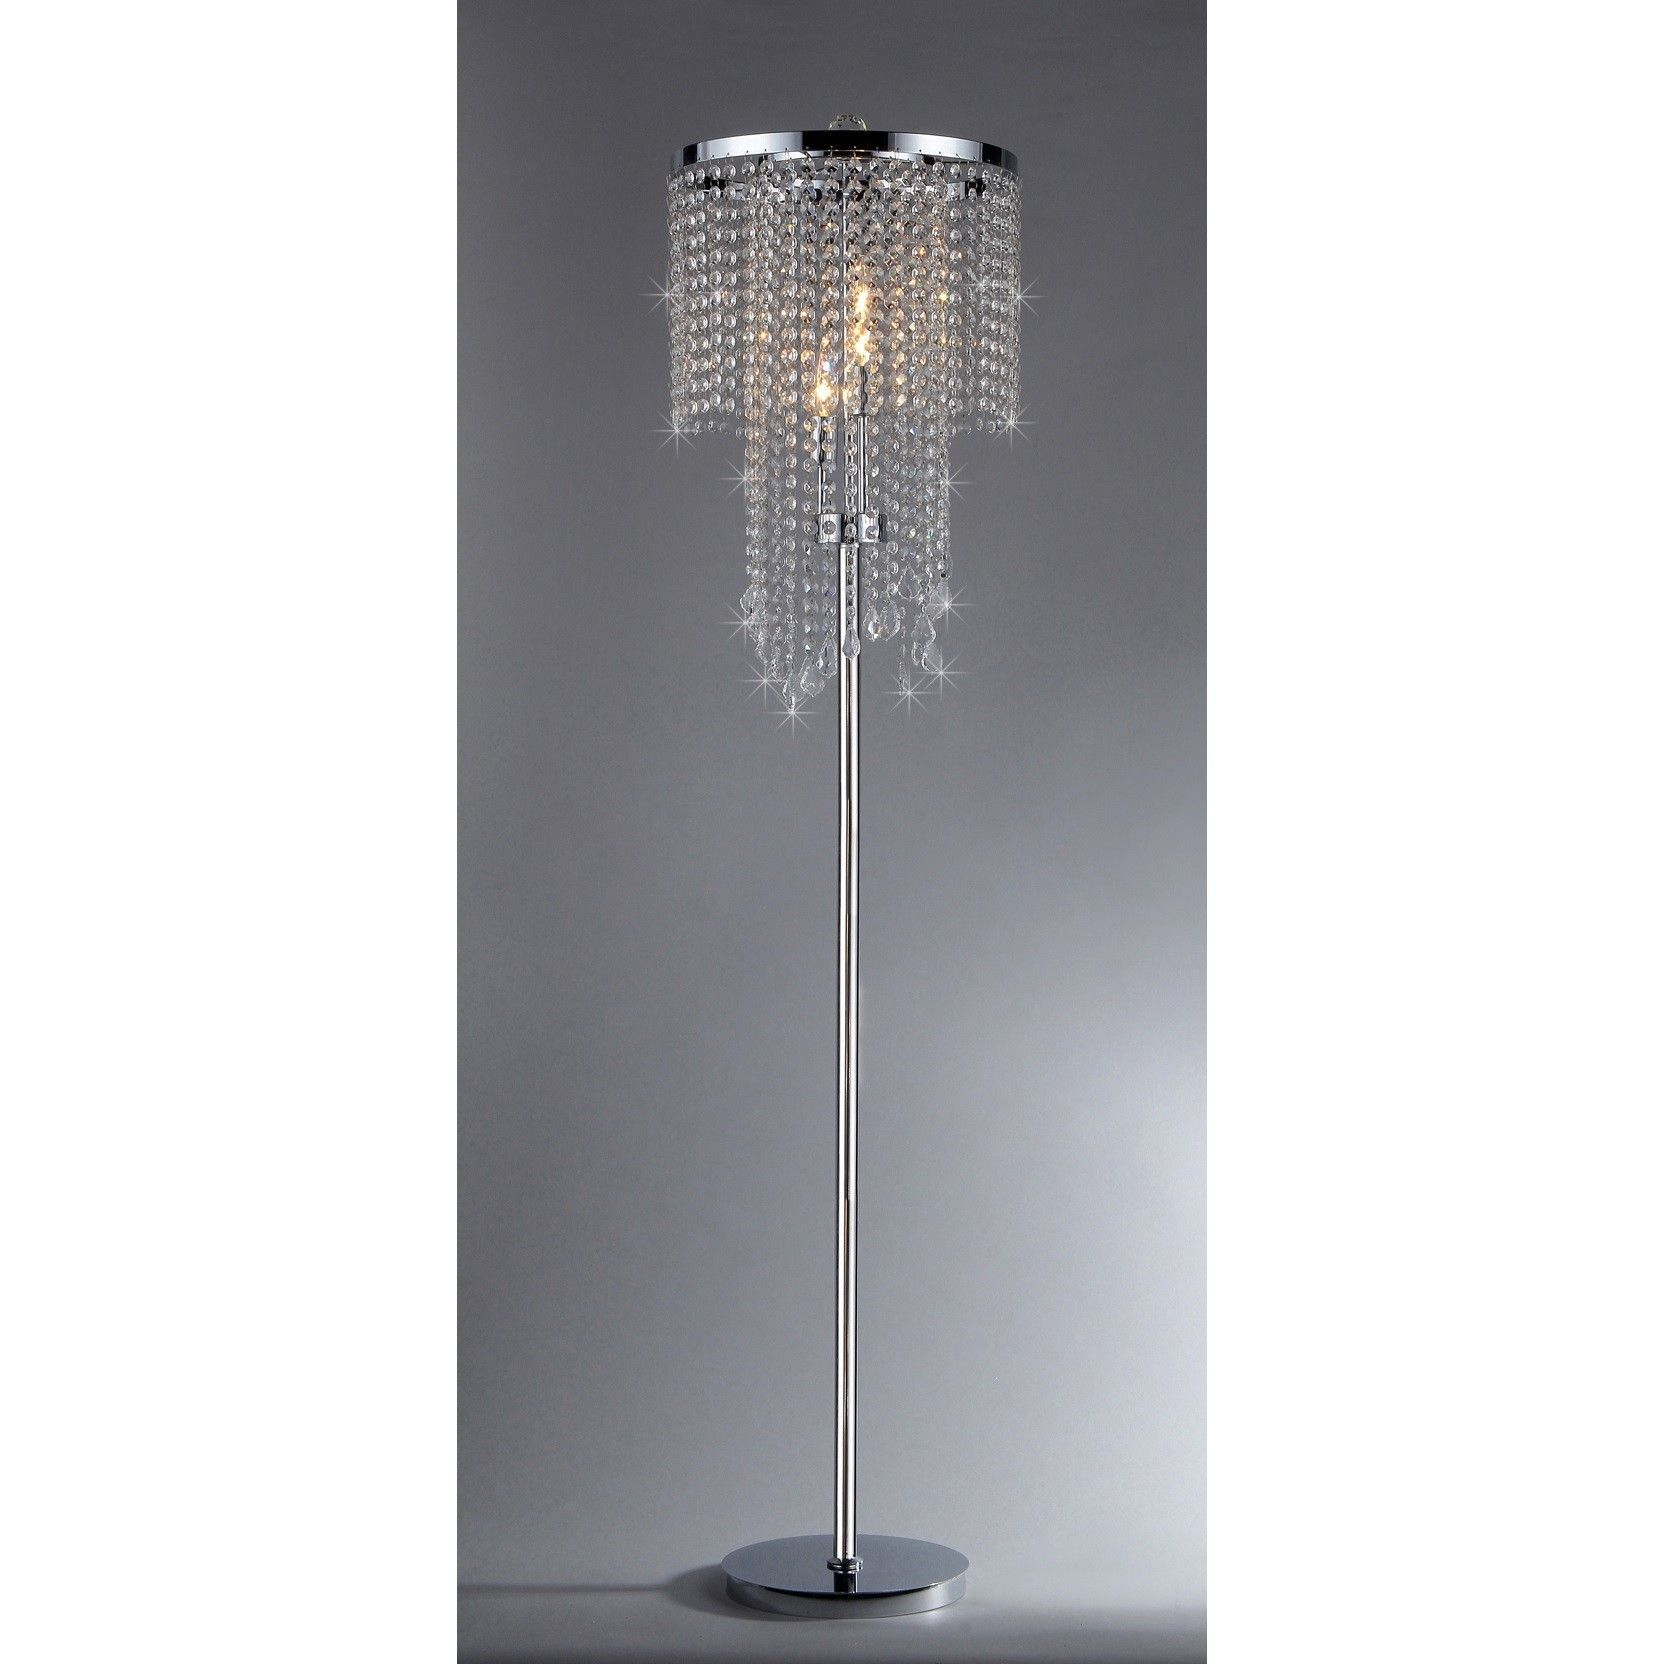 Modern crystal floor lamp - Instantly Add Sparkle To Your Favorite Room With This Modern Crystal Floor Lamp Featuring A Metal Stand With A Chrome Finish And A Cascading Crystal Shade